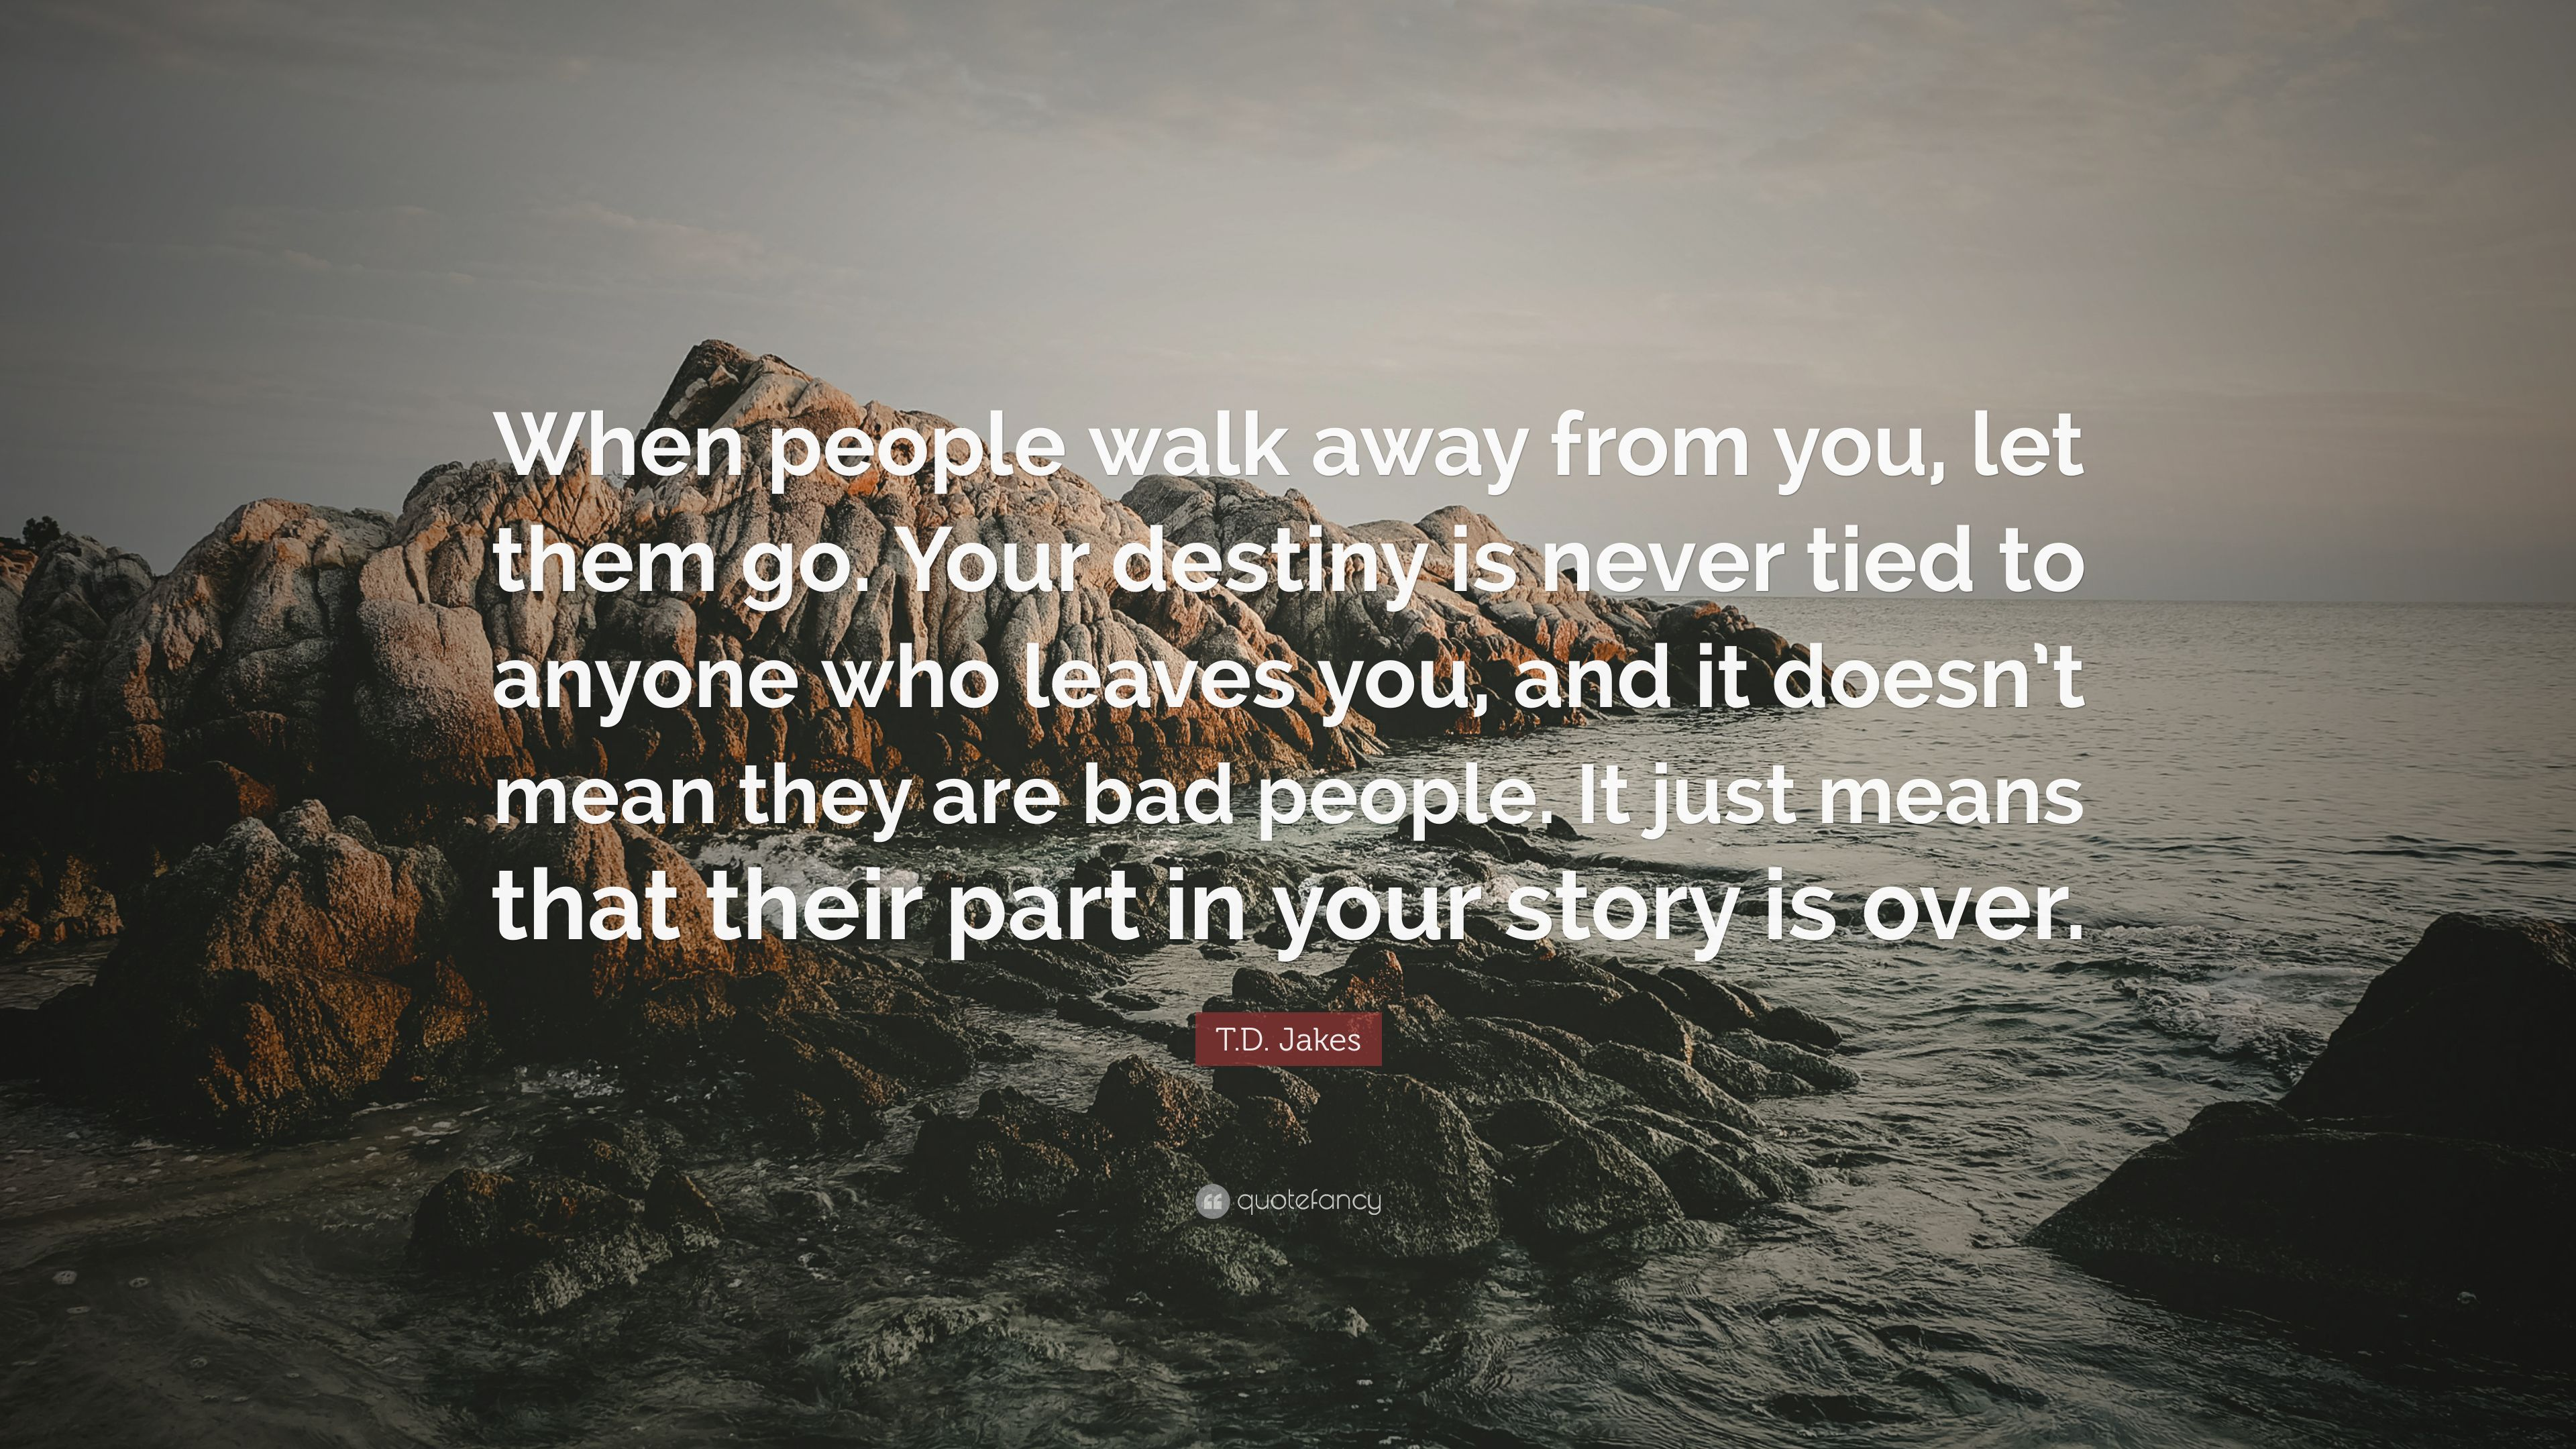 T.D. Jakes Quote: When people walk away from you, let